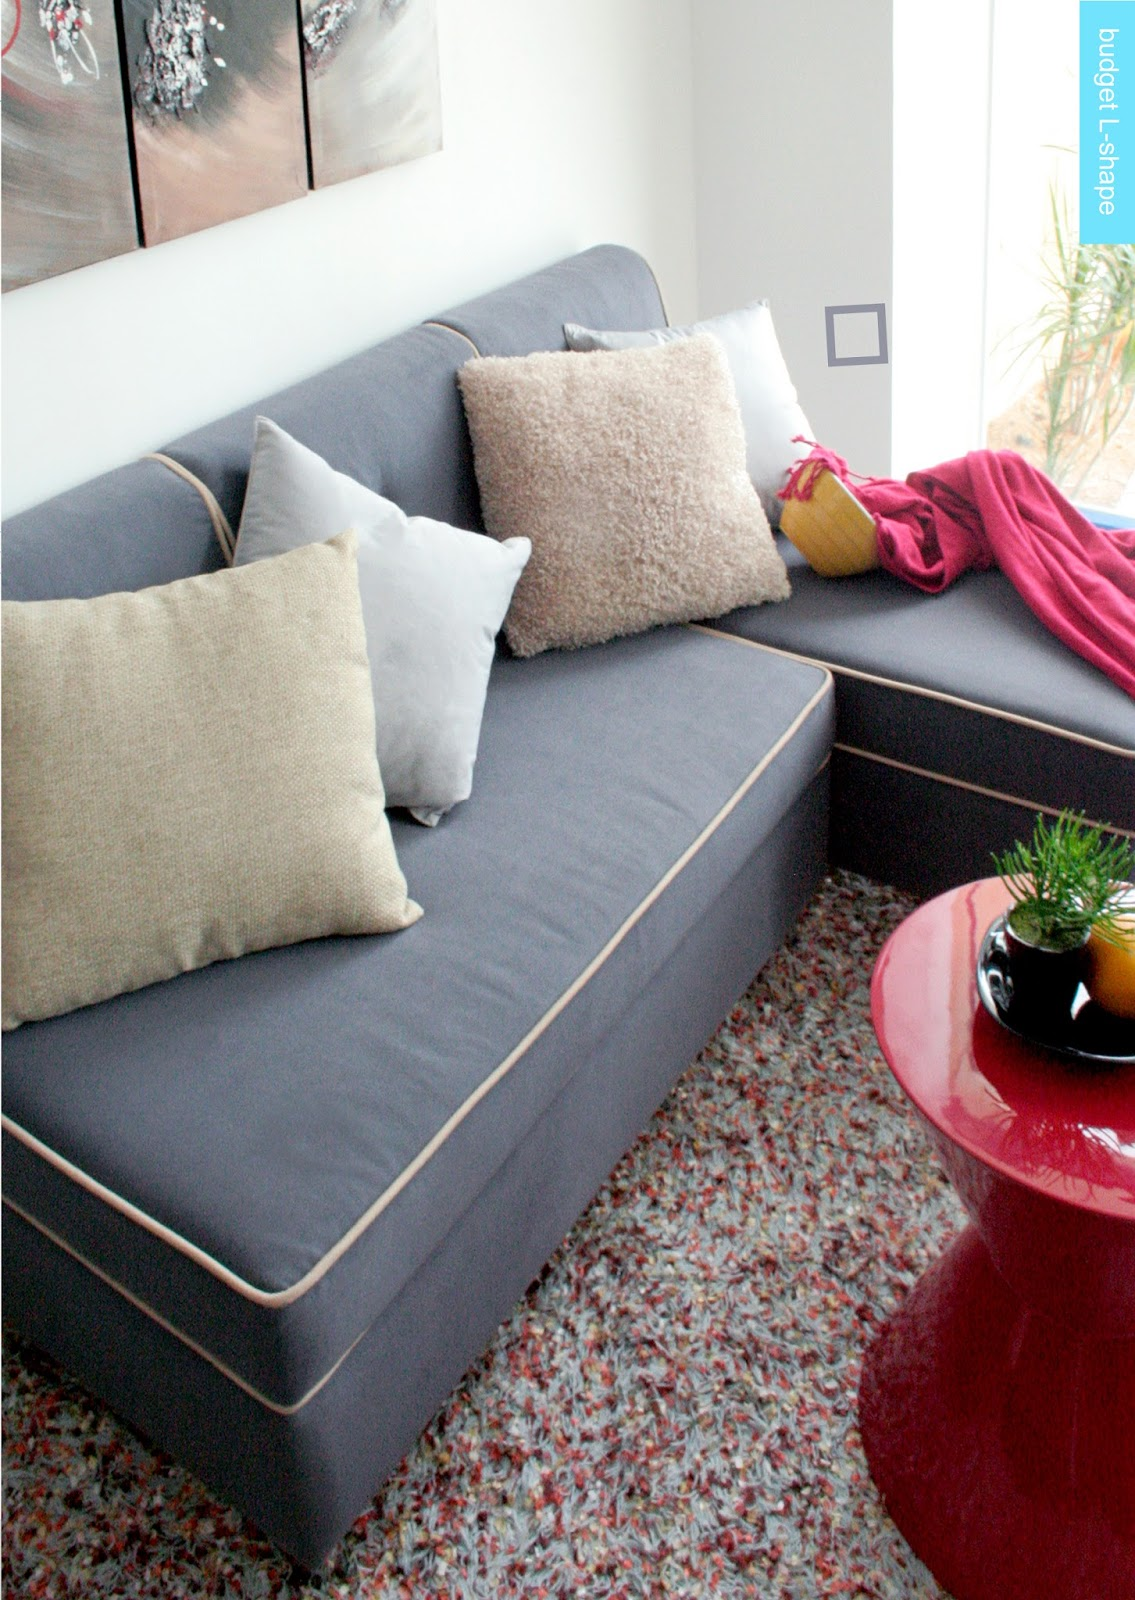 Manila Life Decorate Your Dream Home At A Low Cost With